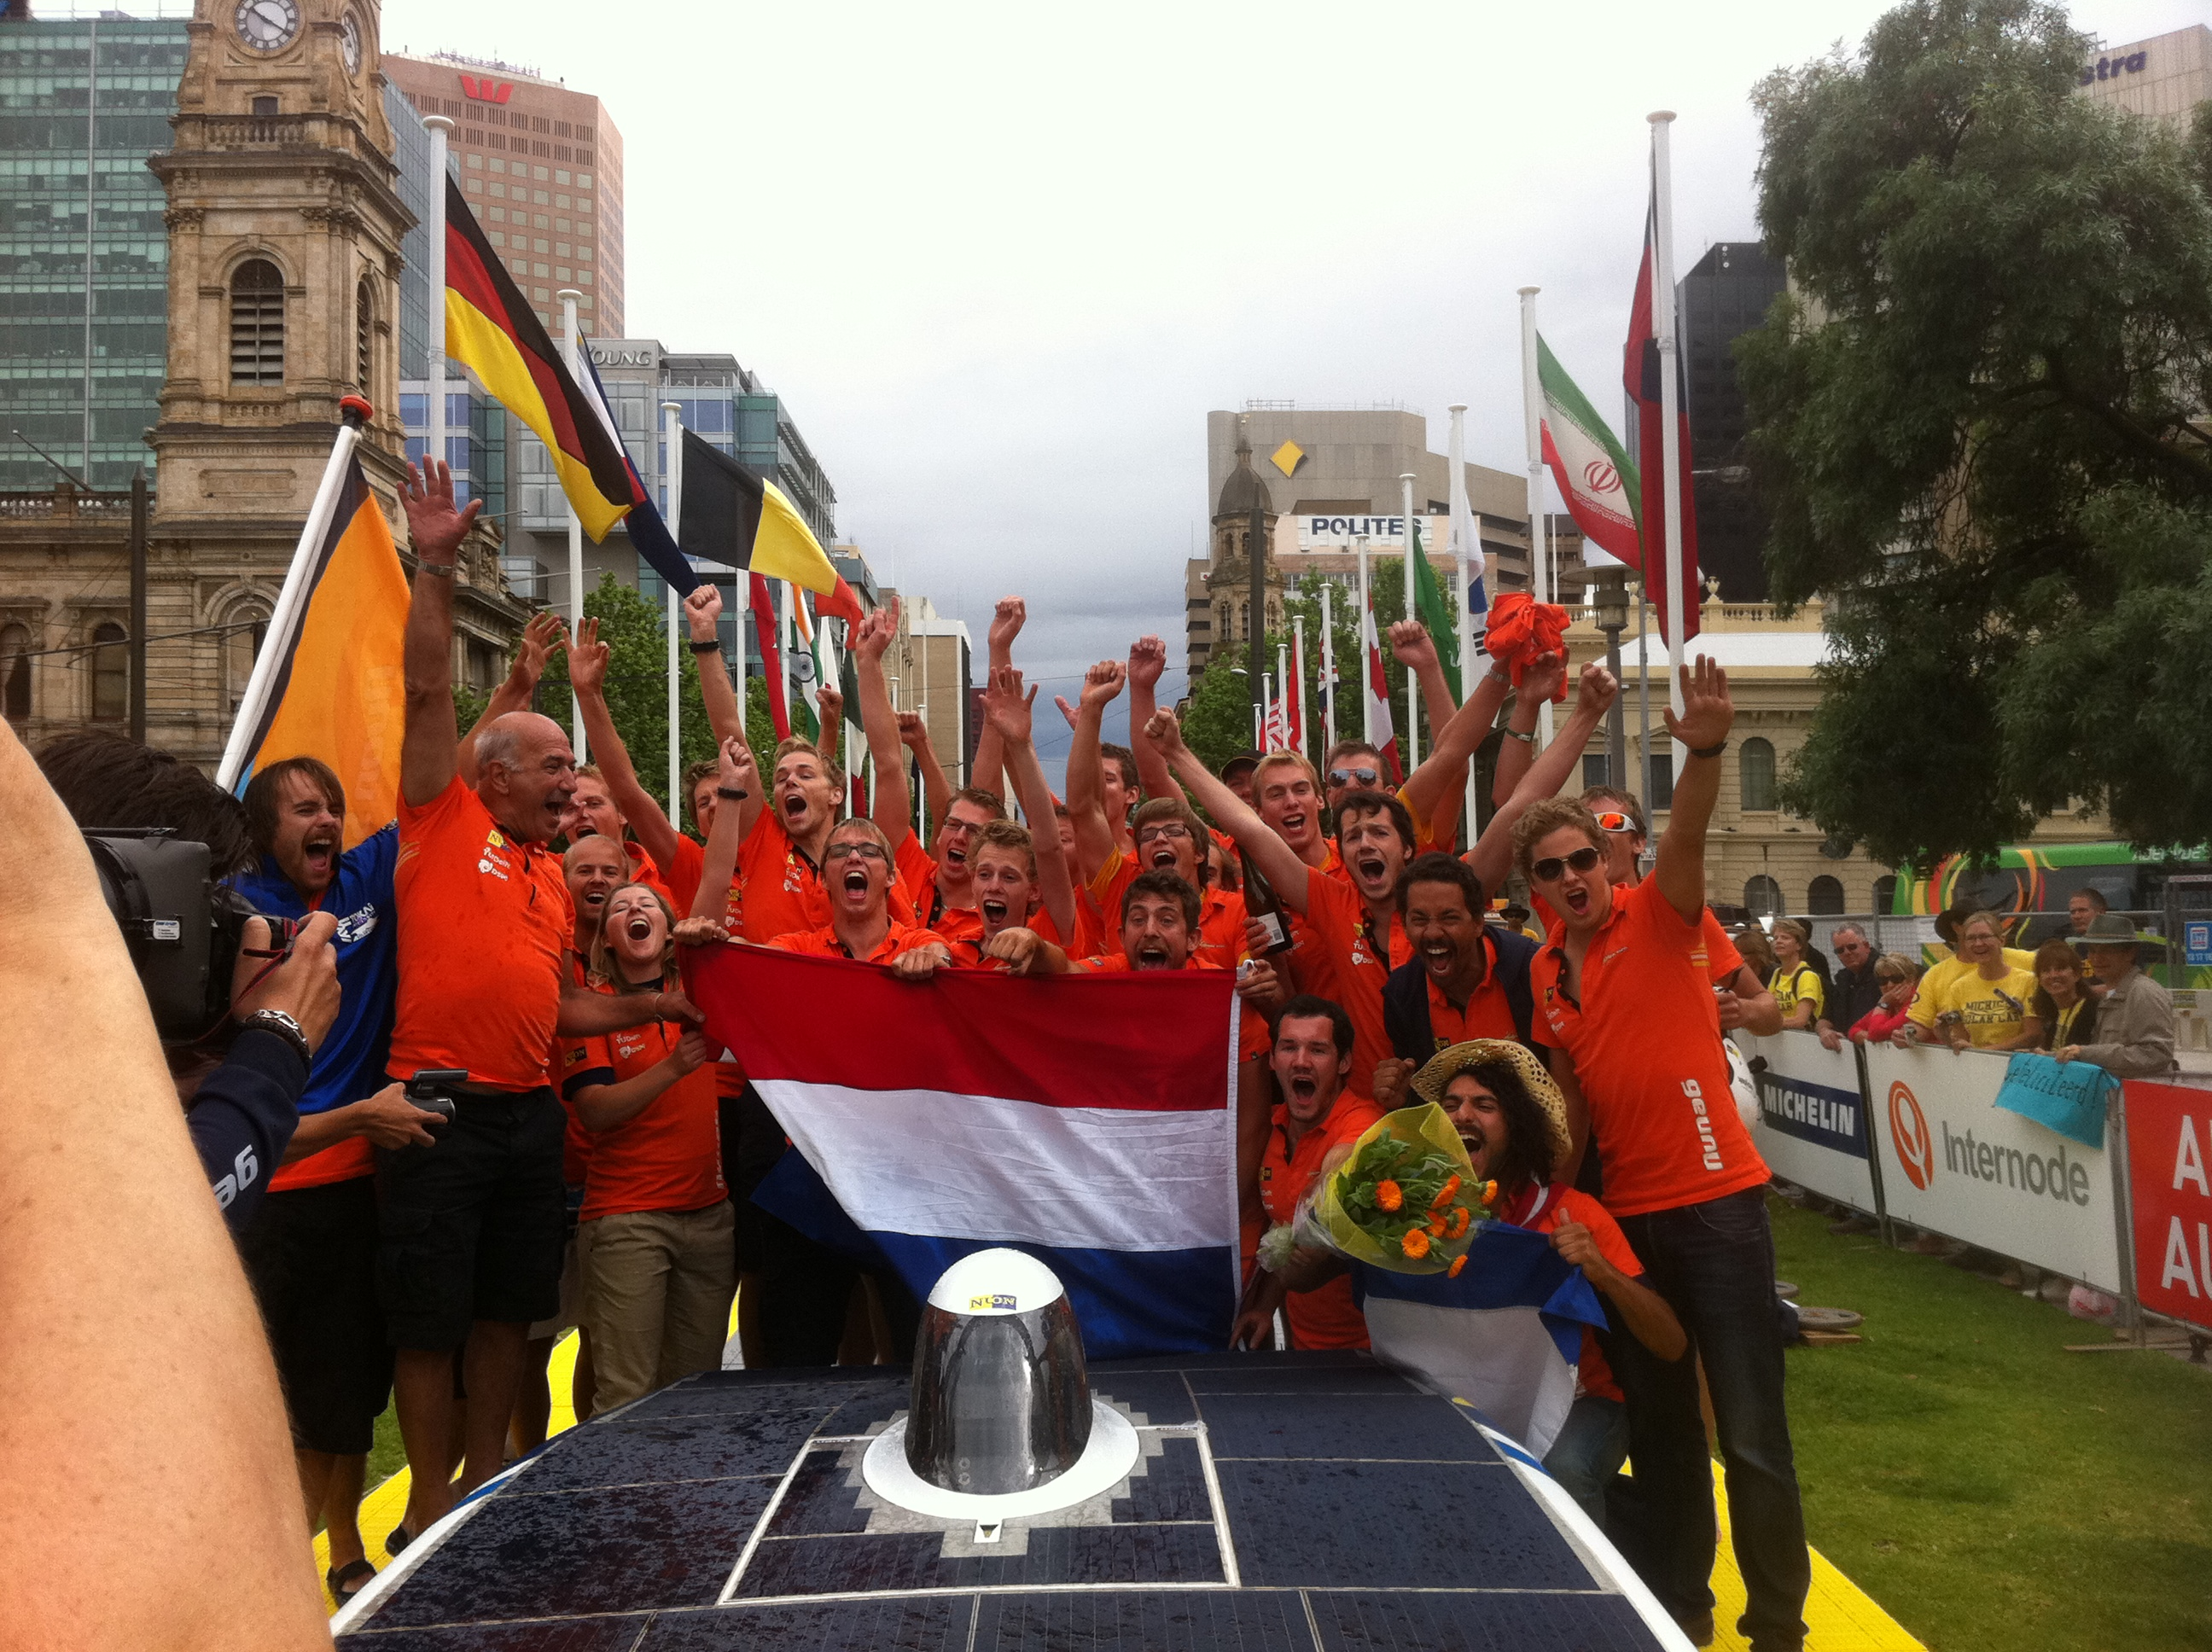 Nuon (2nd Winning team of WSC 2011) arriving at Victoria Square of Adelaide, Australia